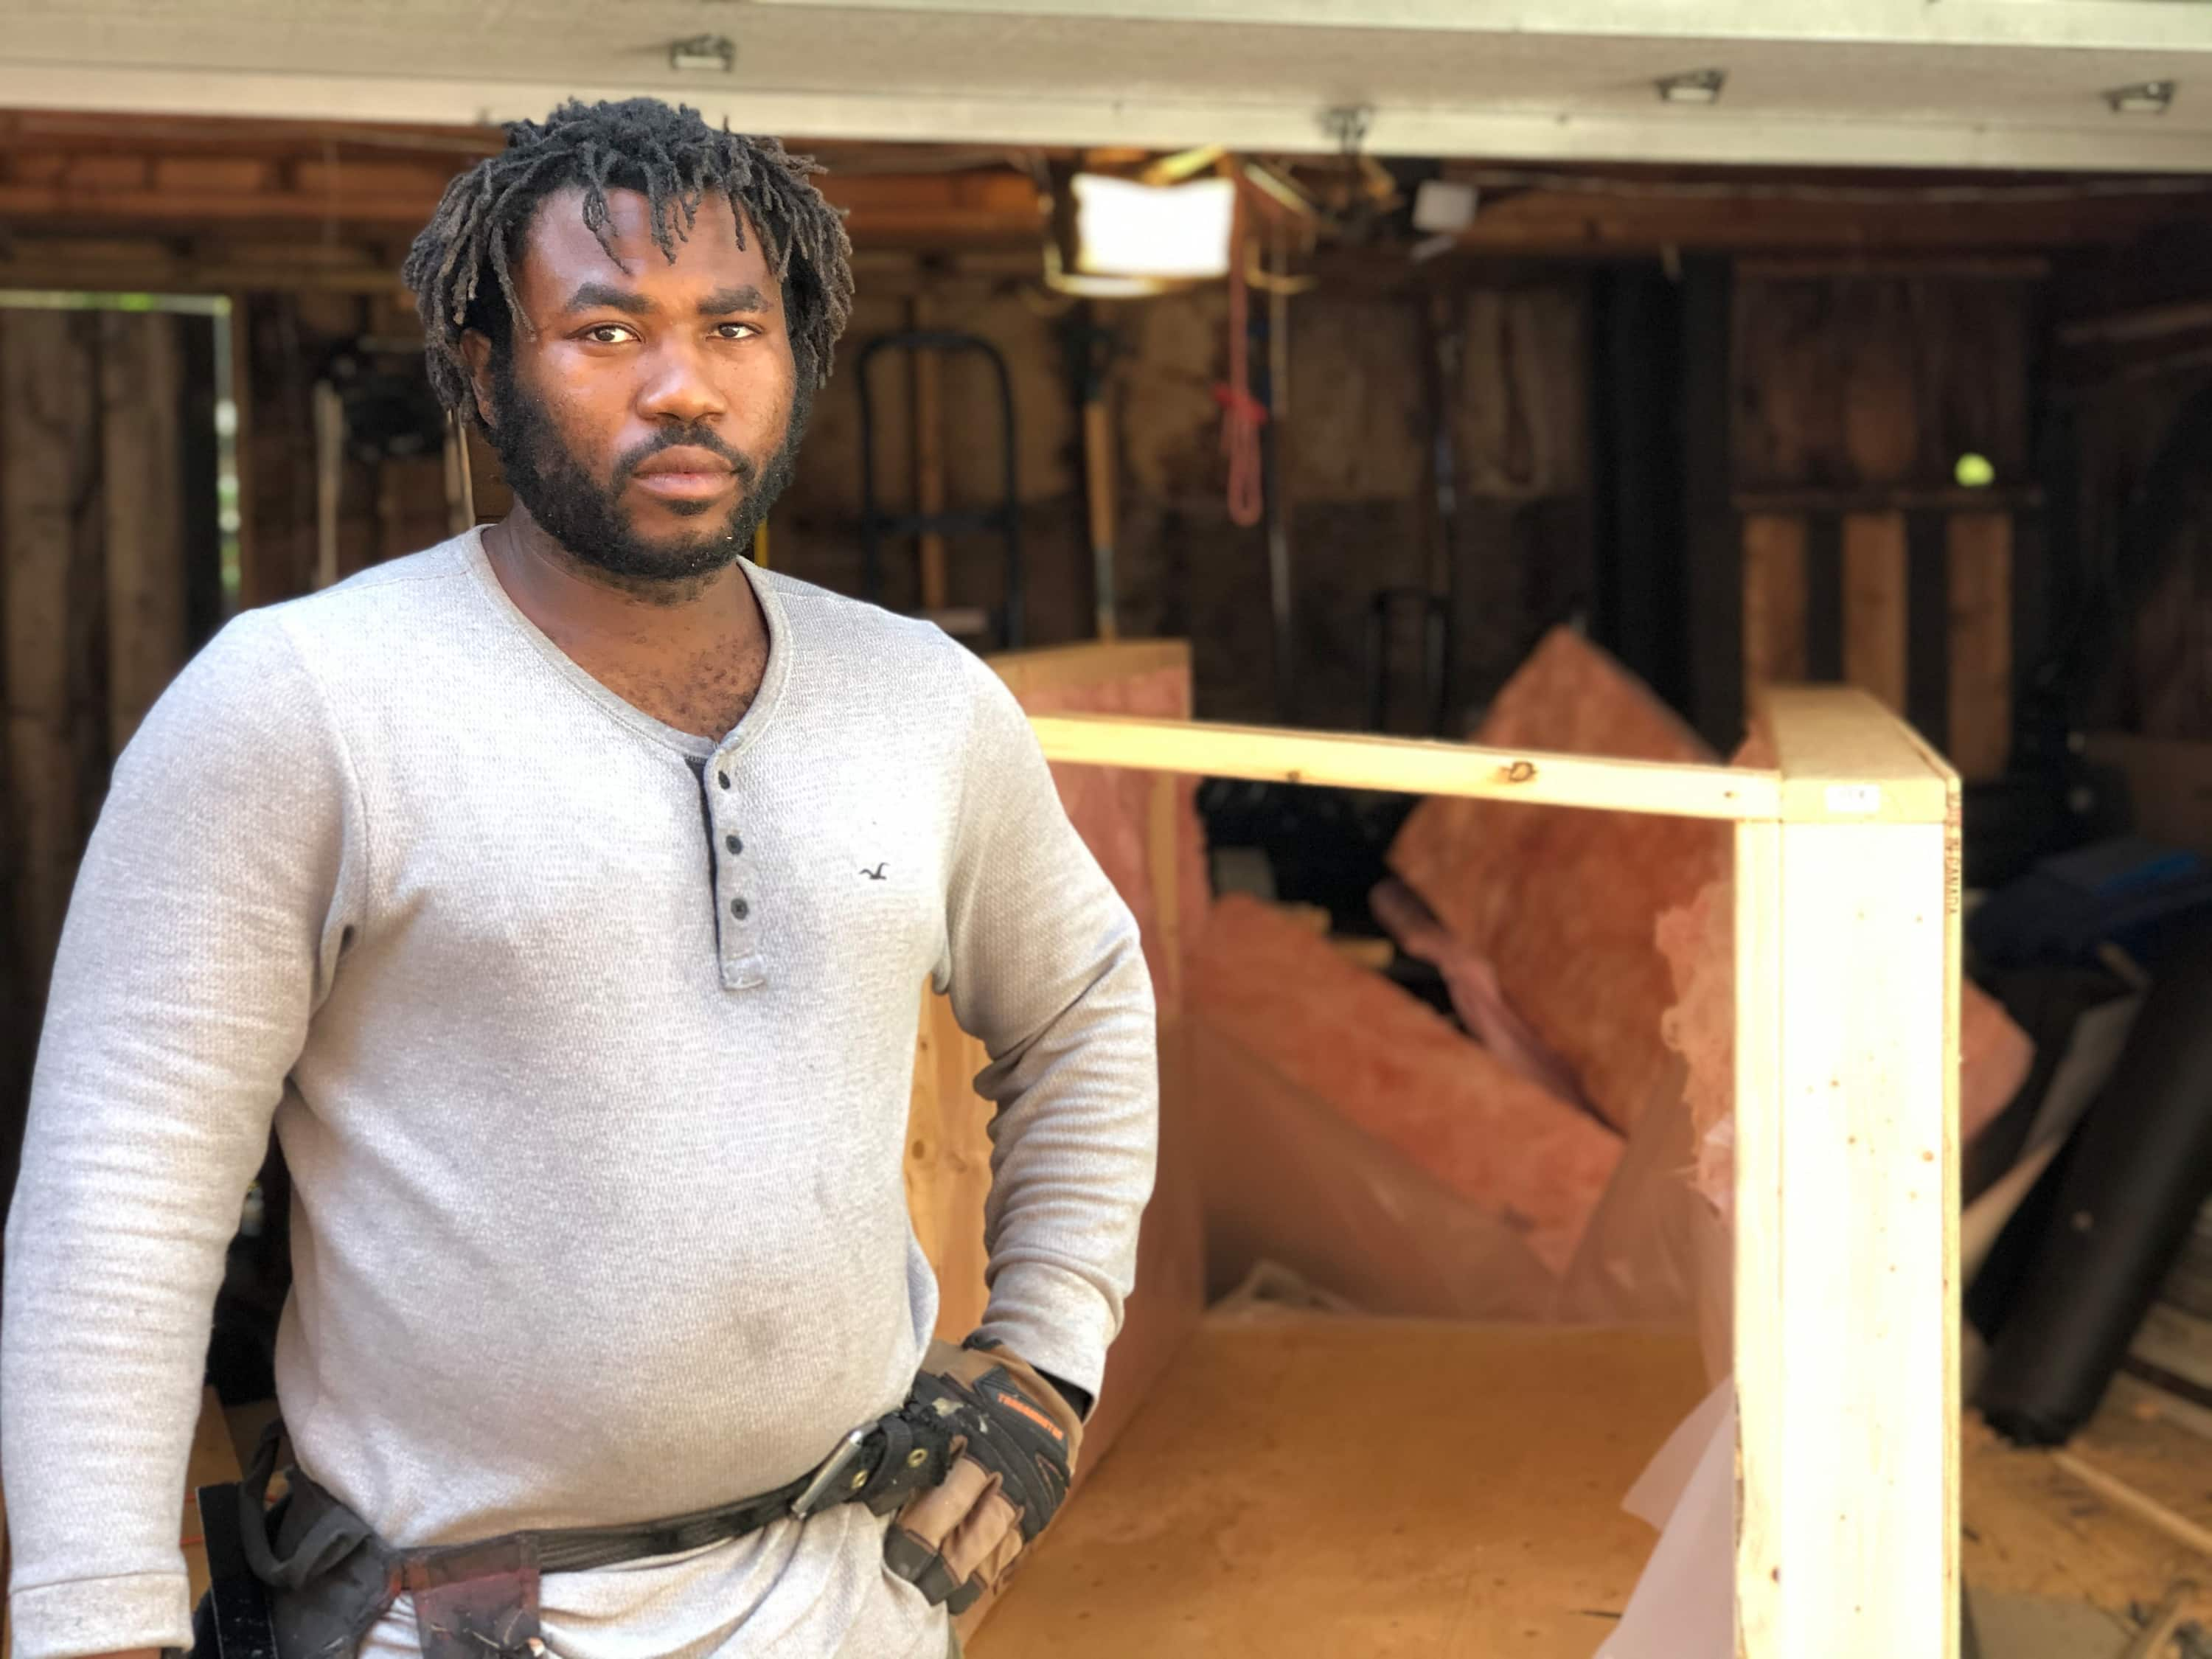 Khaleel Seivwright is building insulated, mobile shelters for homeless people who choose to stay outdoors this winter.